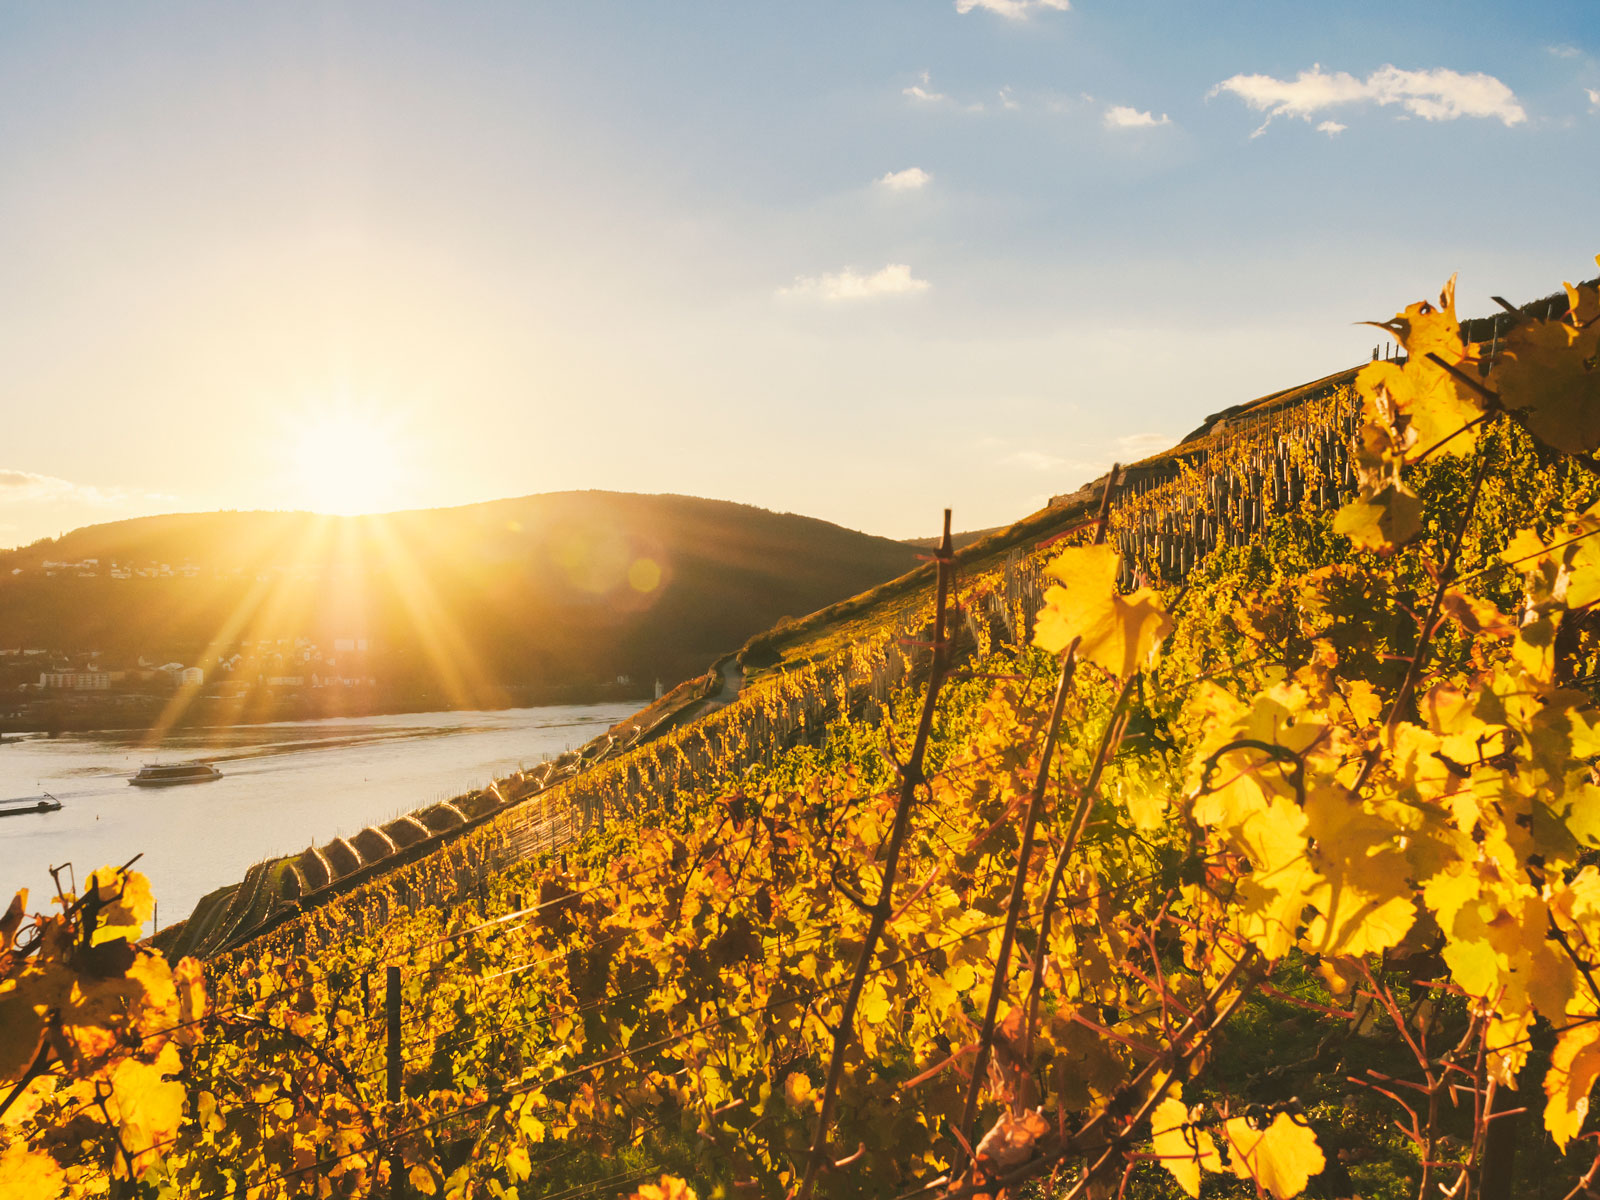 Scientists Create Future Climate Change Conditions in German Vineyard